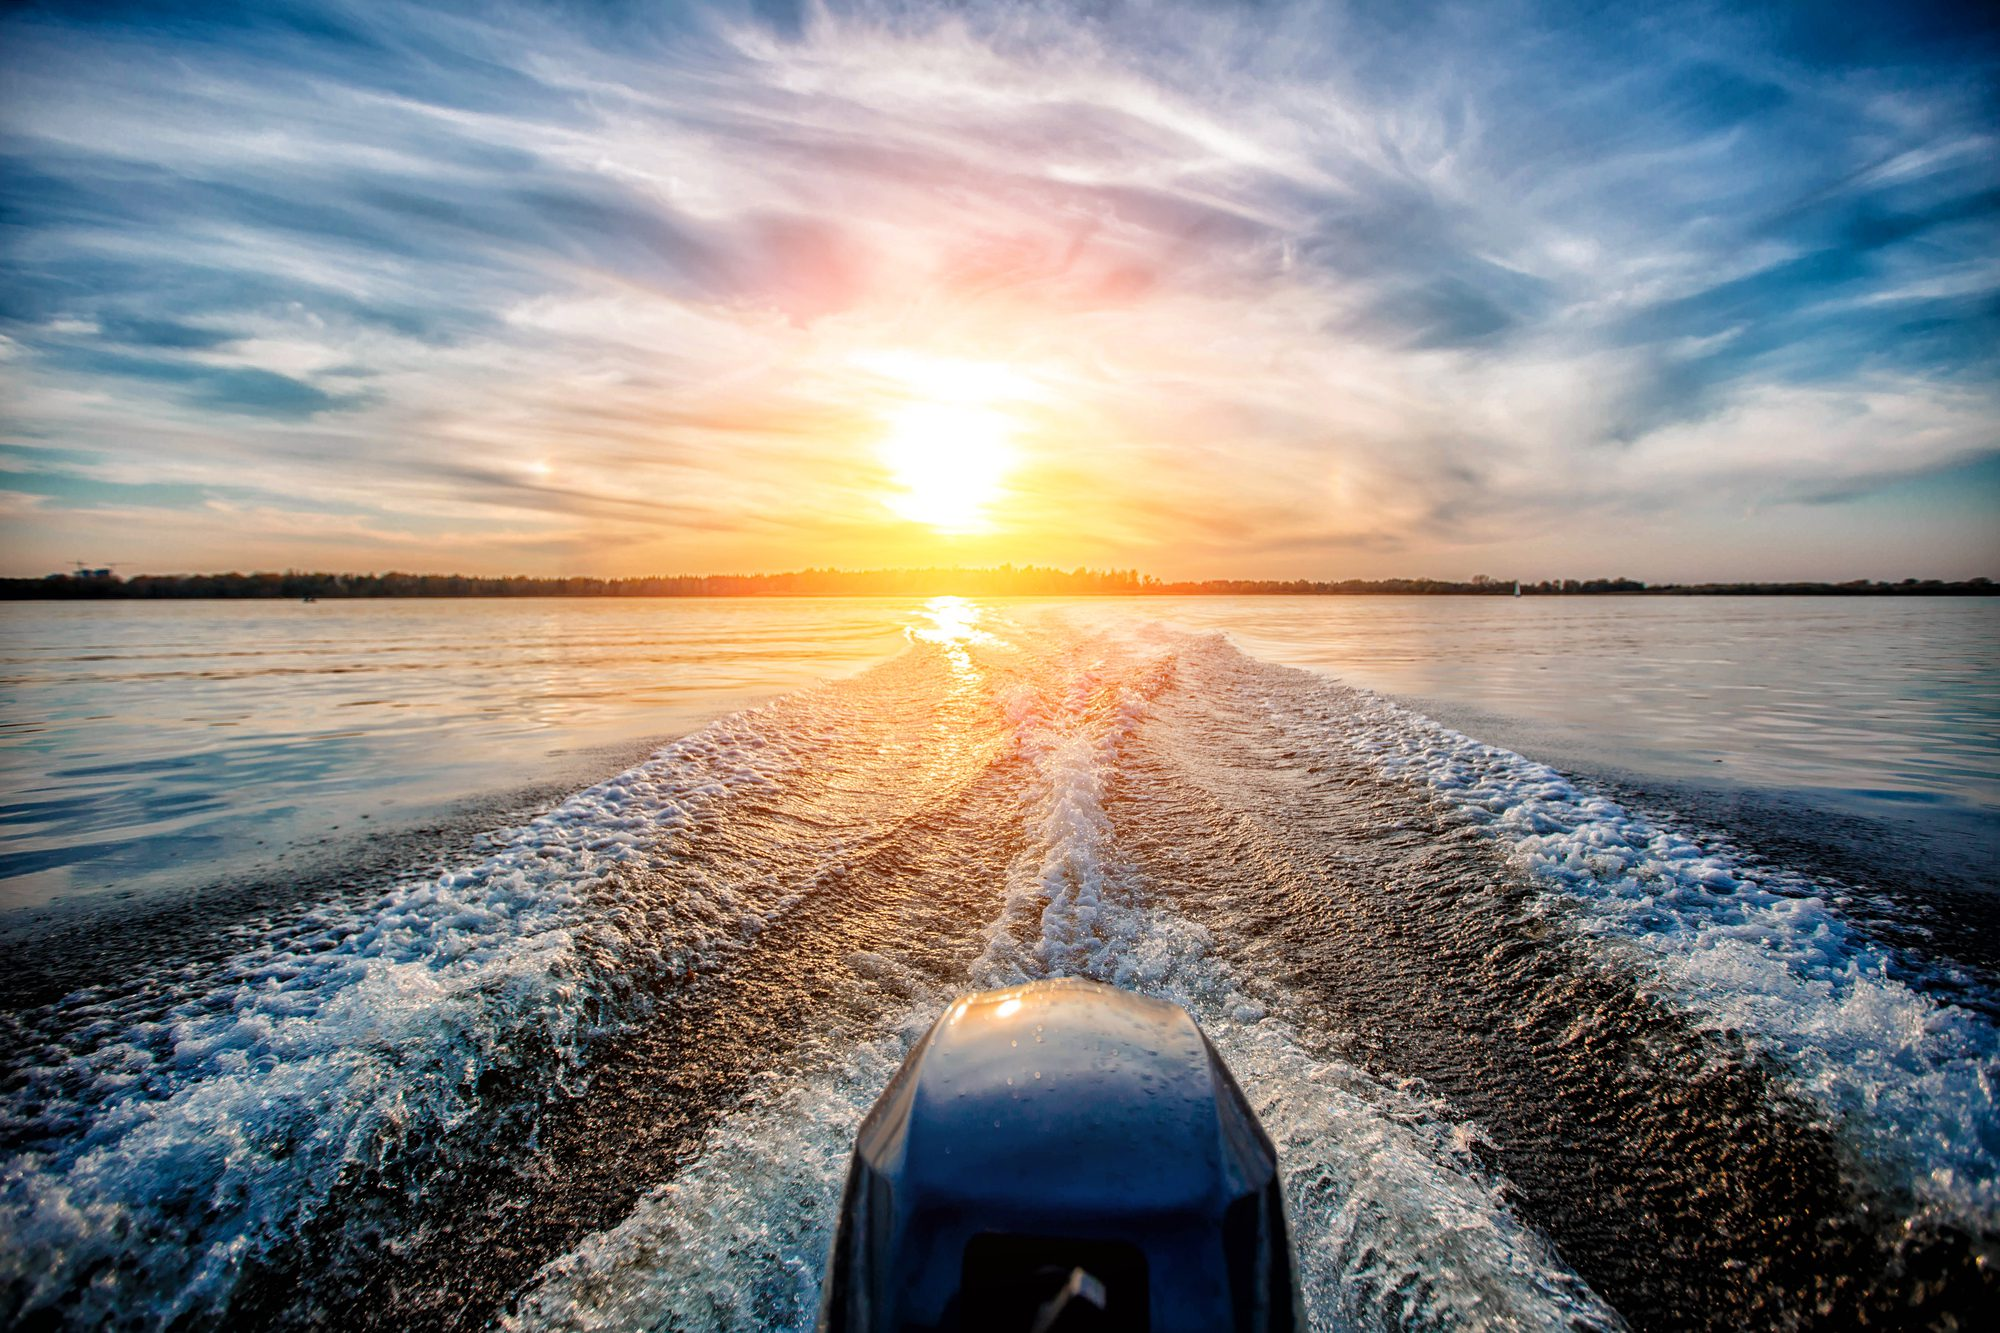 5 ways to stay safe on the water this summer